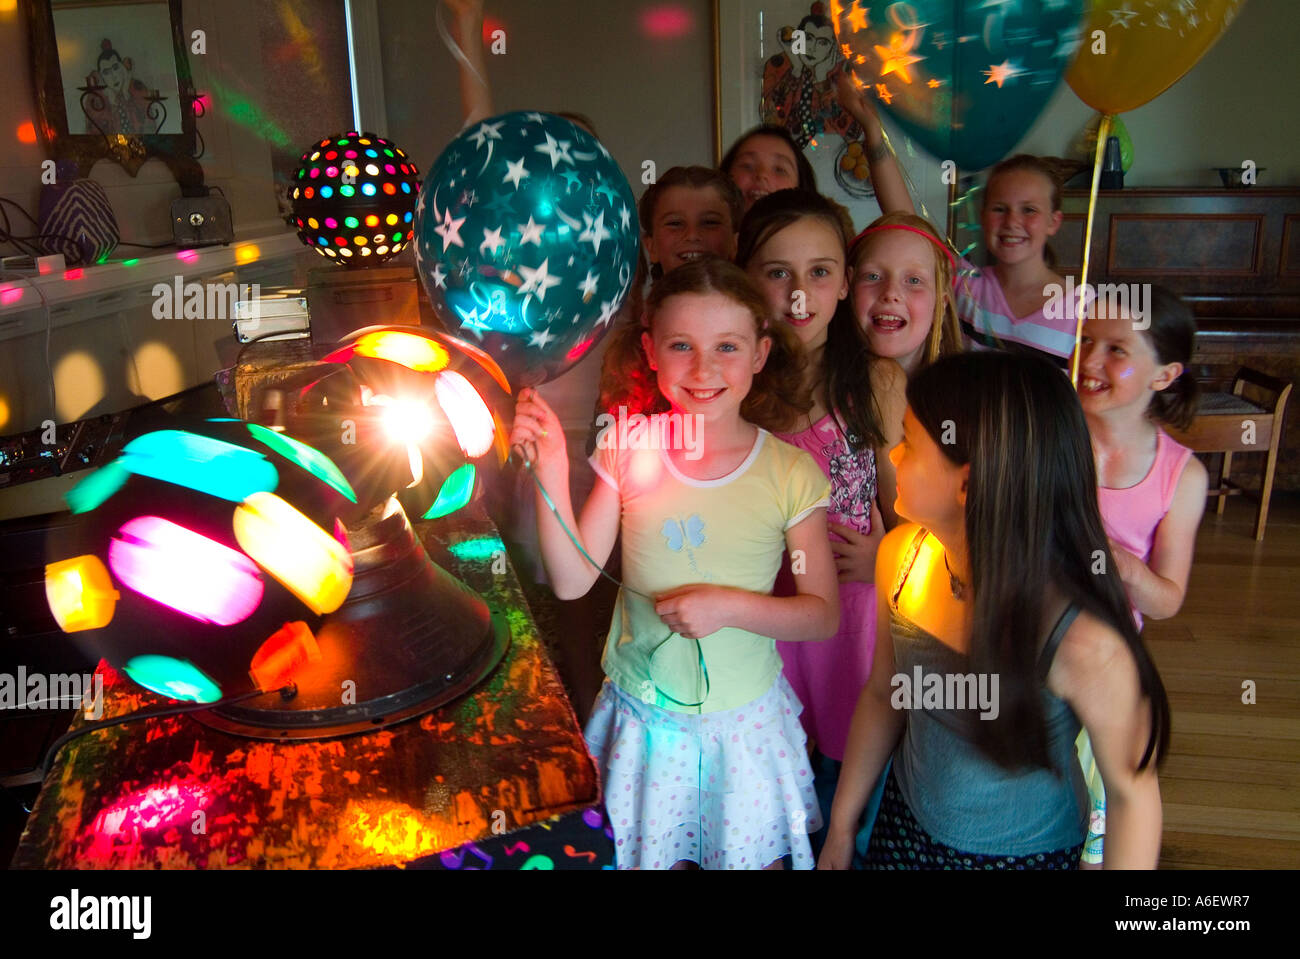 9 Year Old Birthday Party Themes Girls